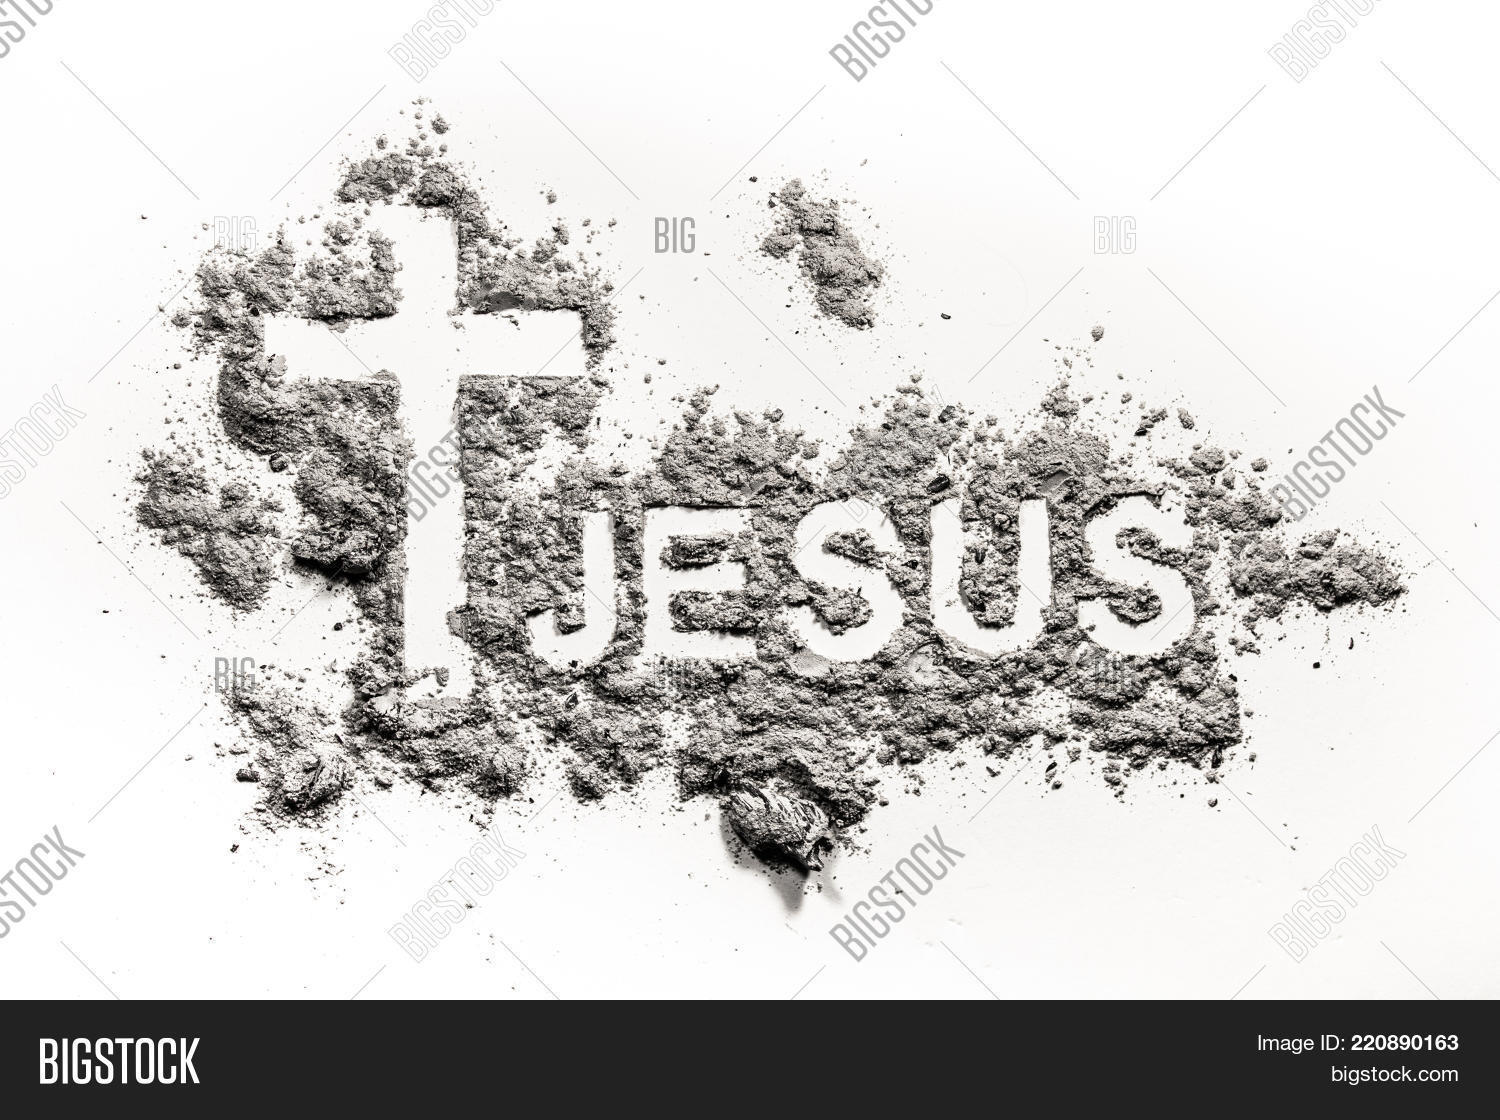 Word jesus christian cross crucifix image photo bigstock word jesus and christian cross or crucifix made in ash as lent ash wednesday buycottarizona